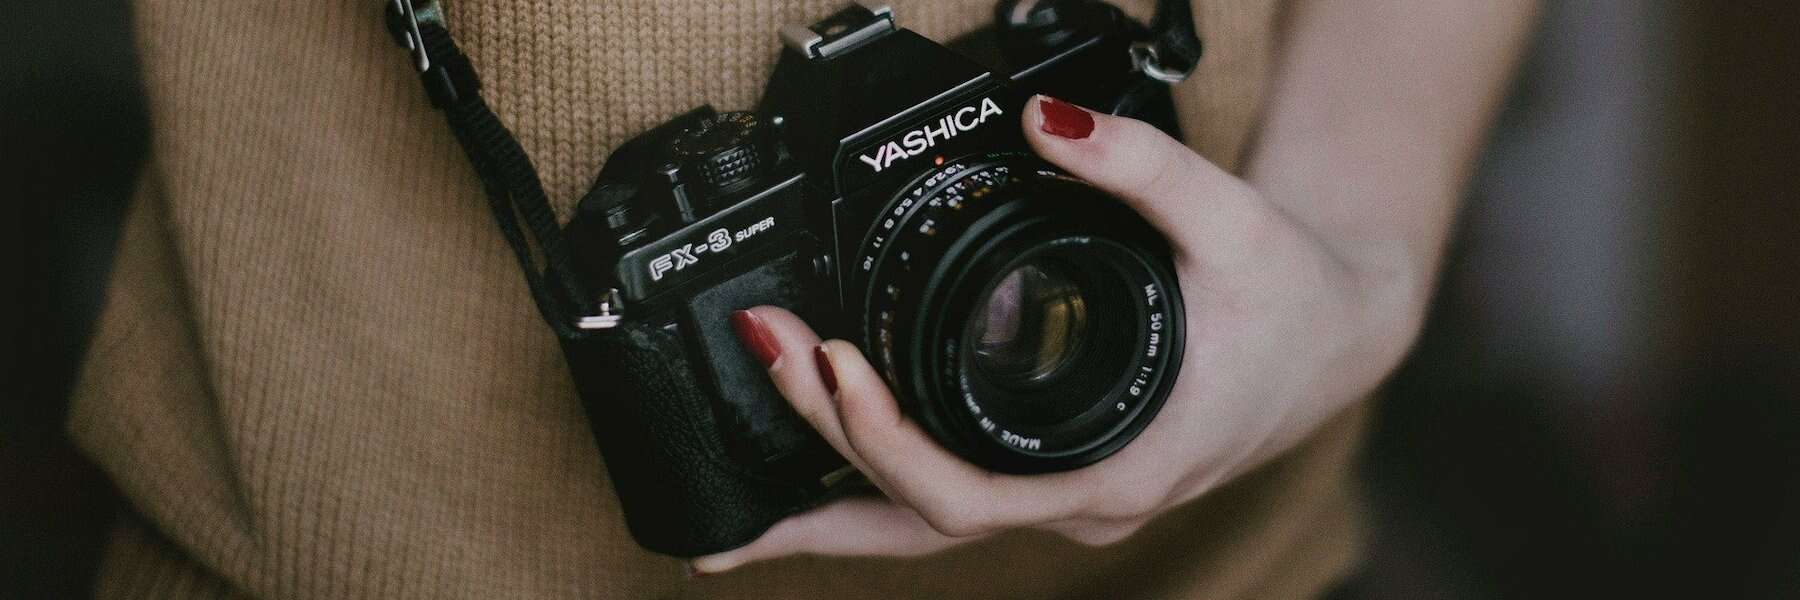 How to give back through photography